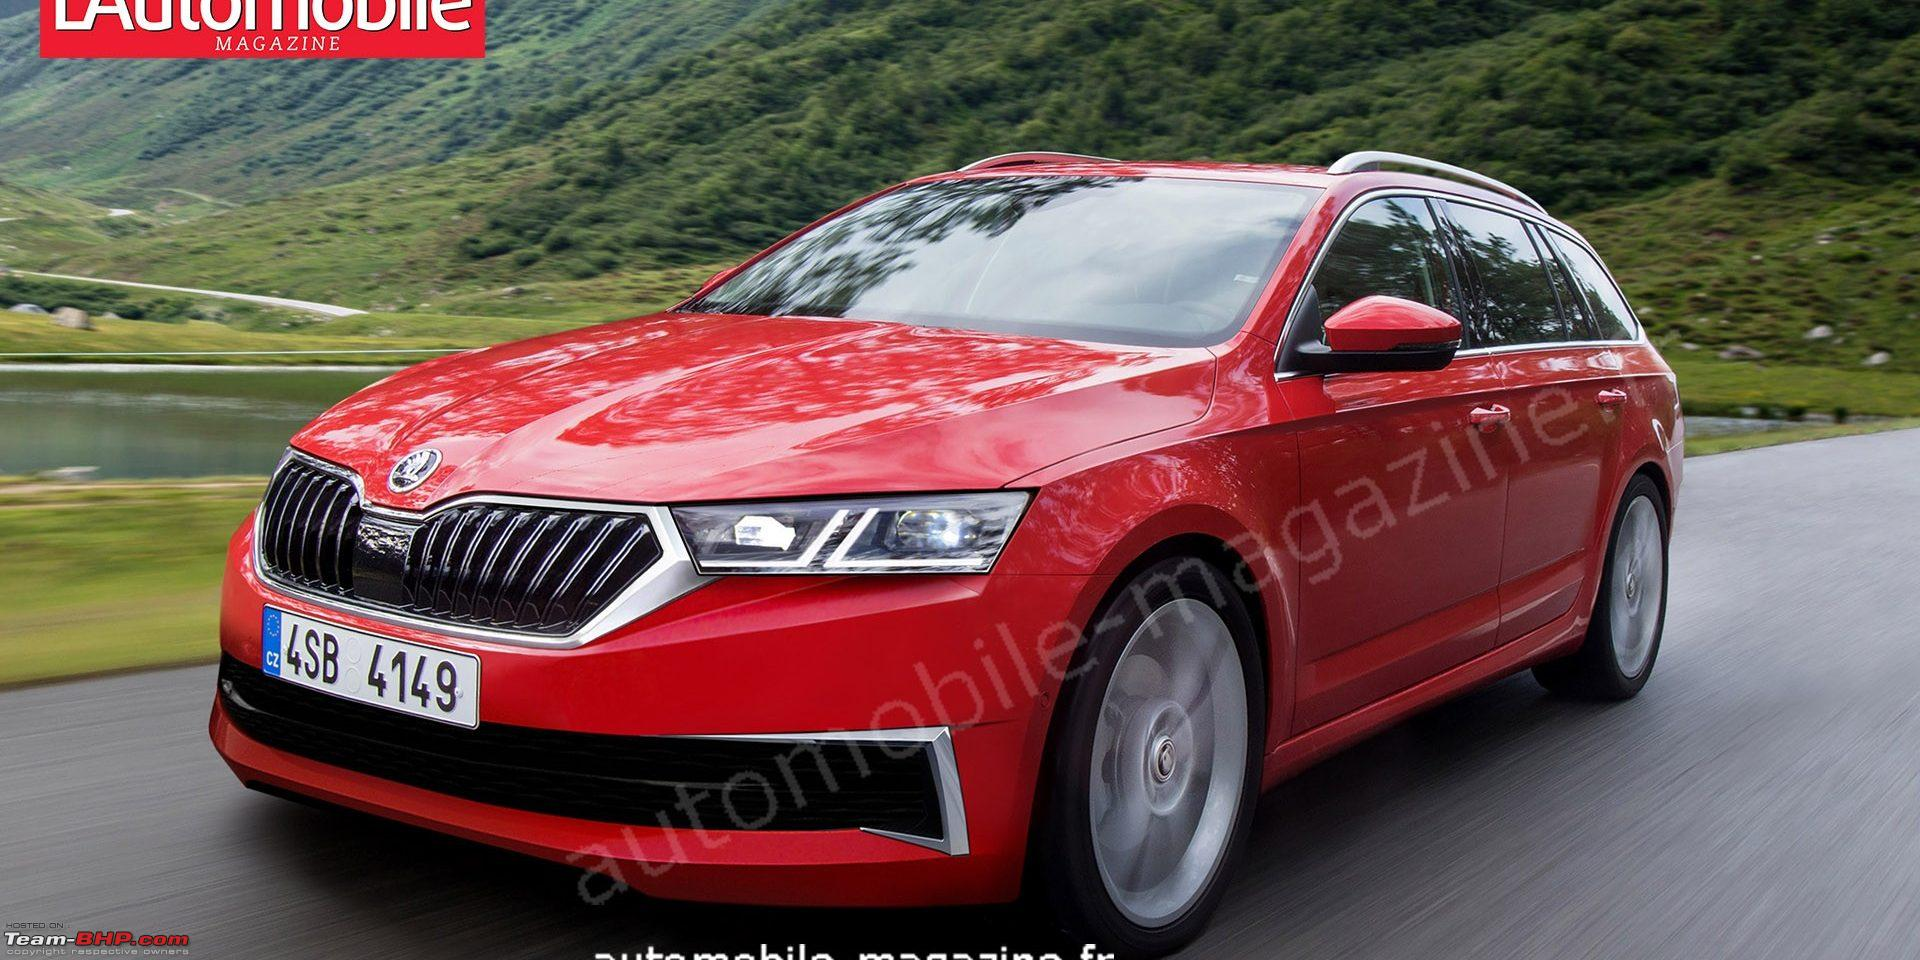 69 The 2020 Skoda Superb Photos